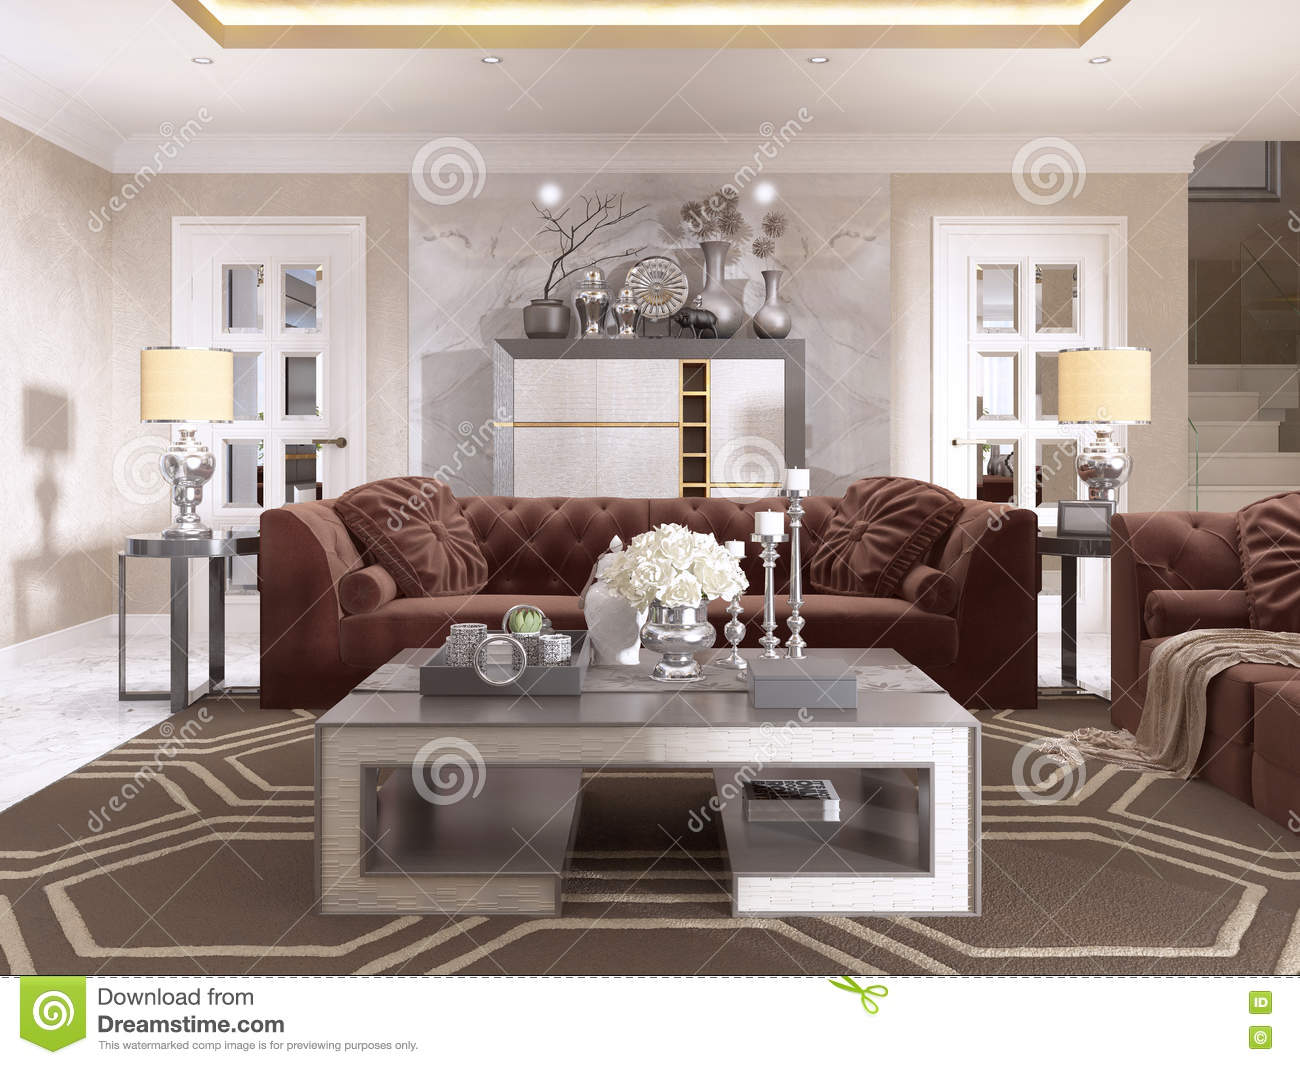 Living room in art deco style with upholstered designer furniture